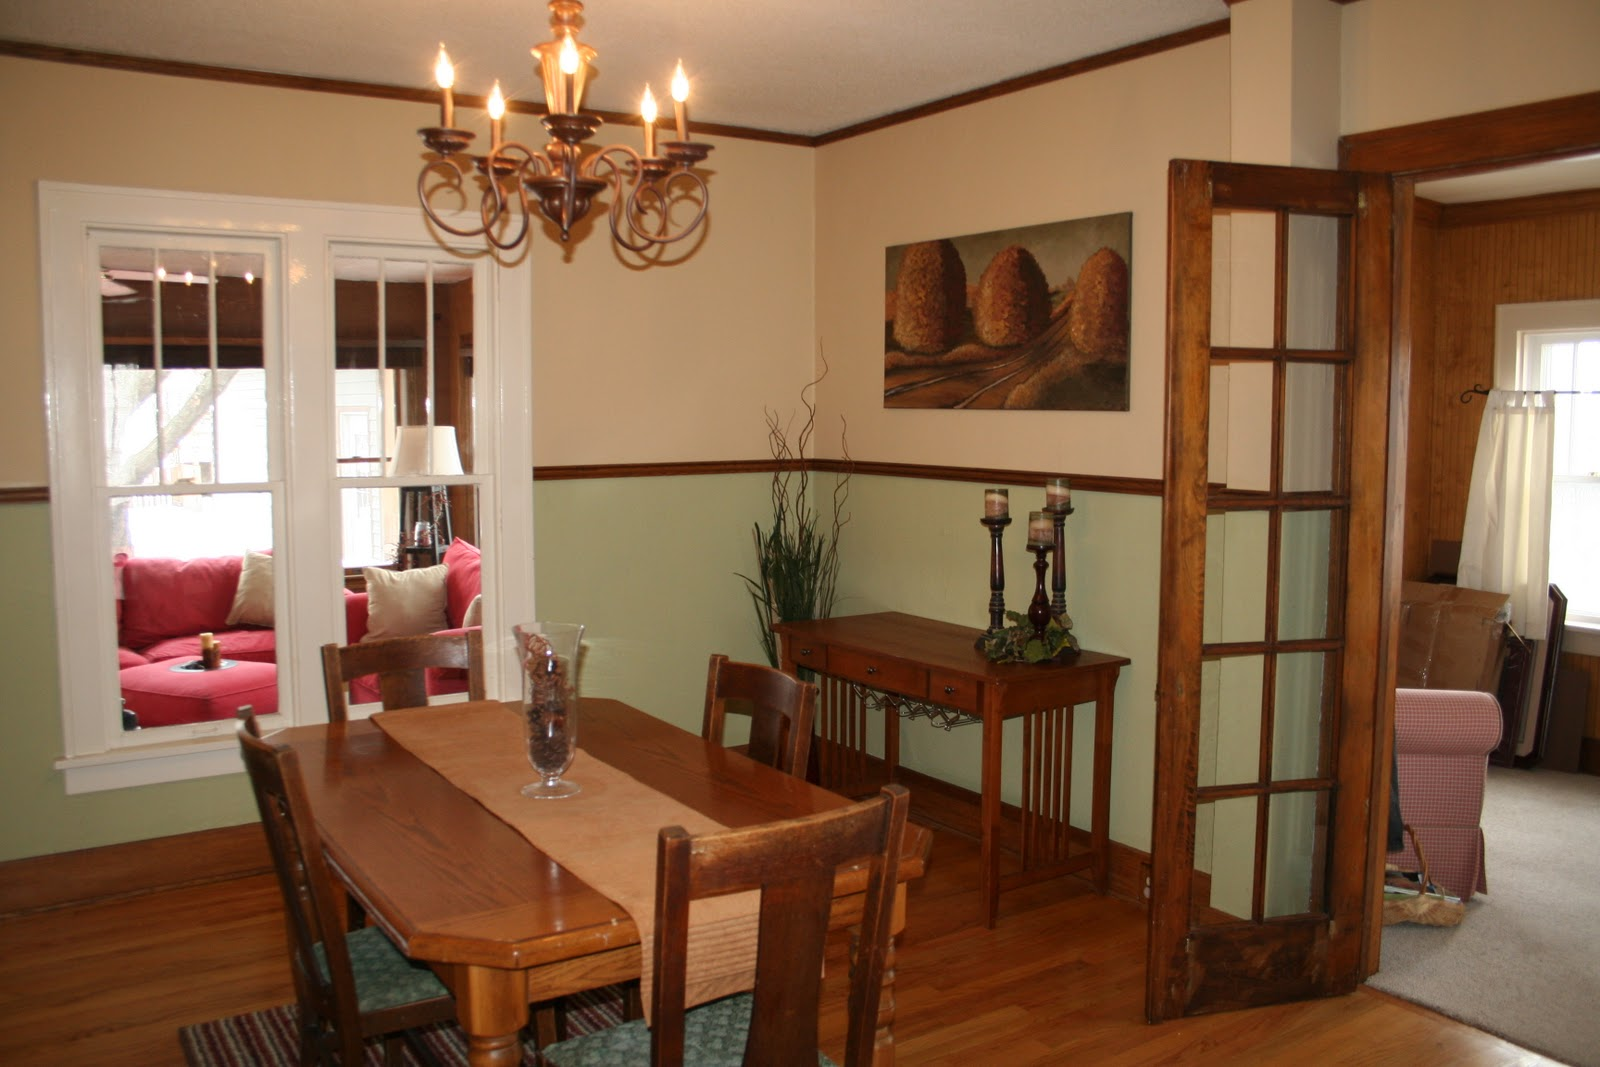 The Dining Room Is Situated In The Center Of The House With Chandelier  Lighting And Original Oak Hardwood Floors And Chair Rail.